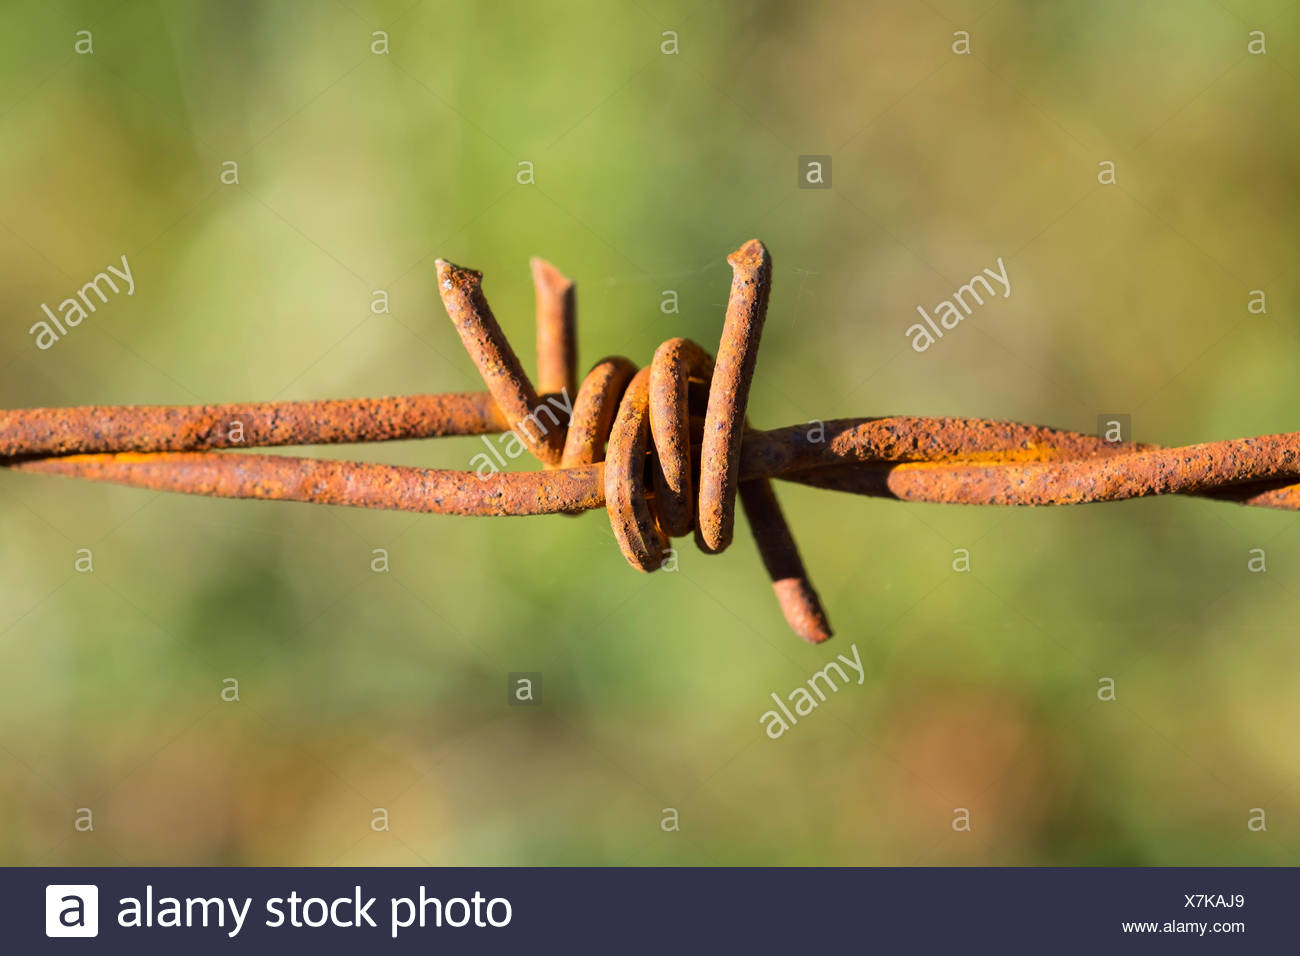 Old Wire Fence Stock Photos & Old Wire Fence Stock Images - Alamy